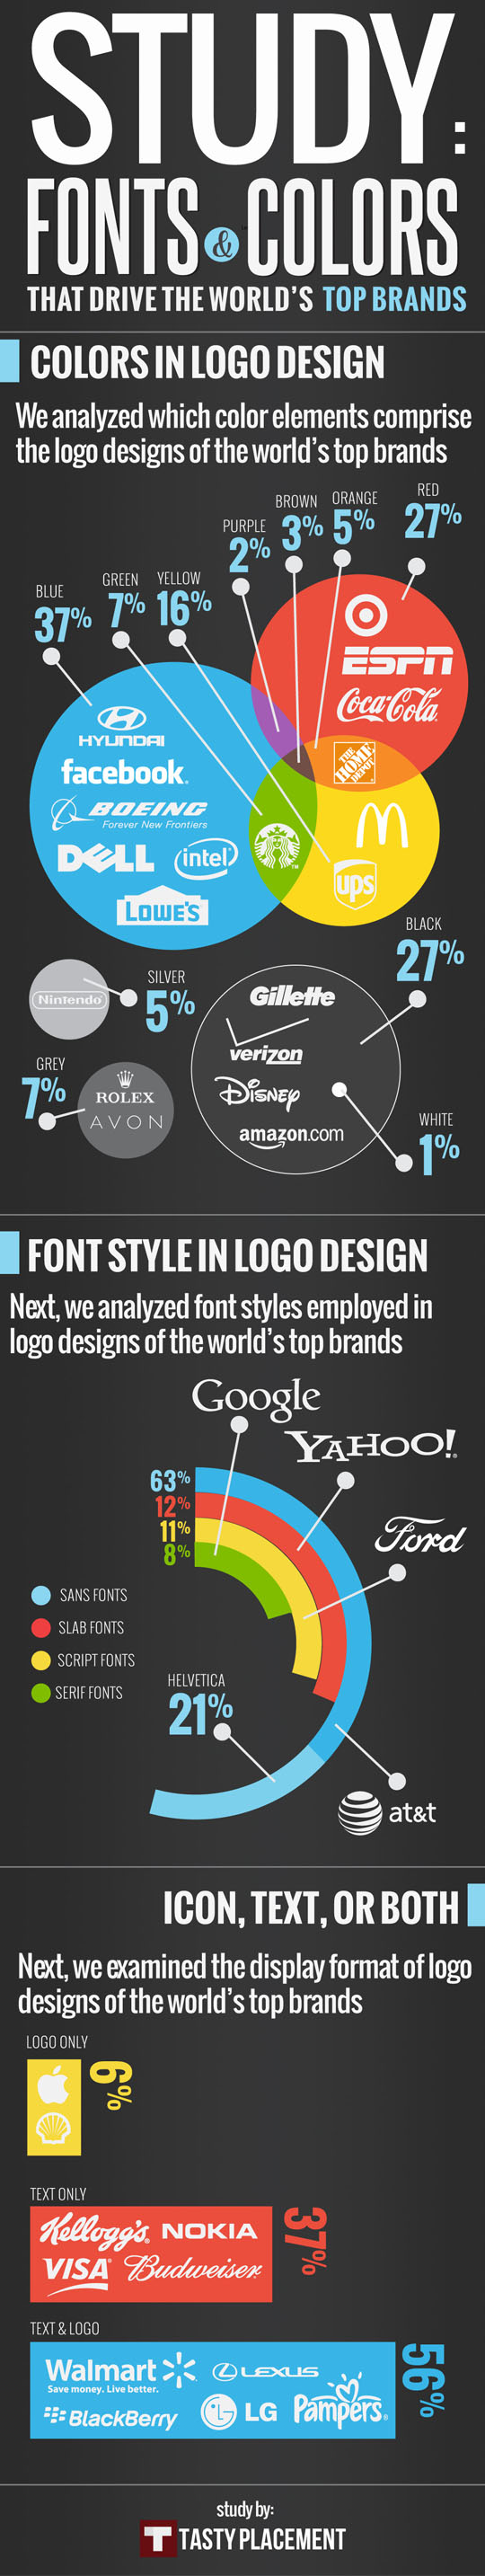 Logo-and-Font-Color-Infographic-Full